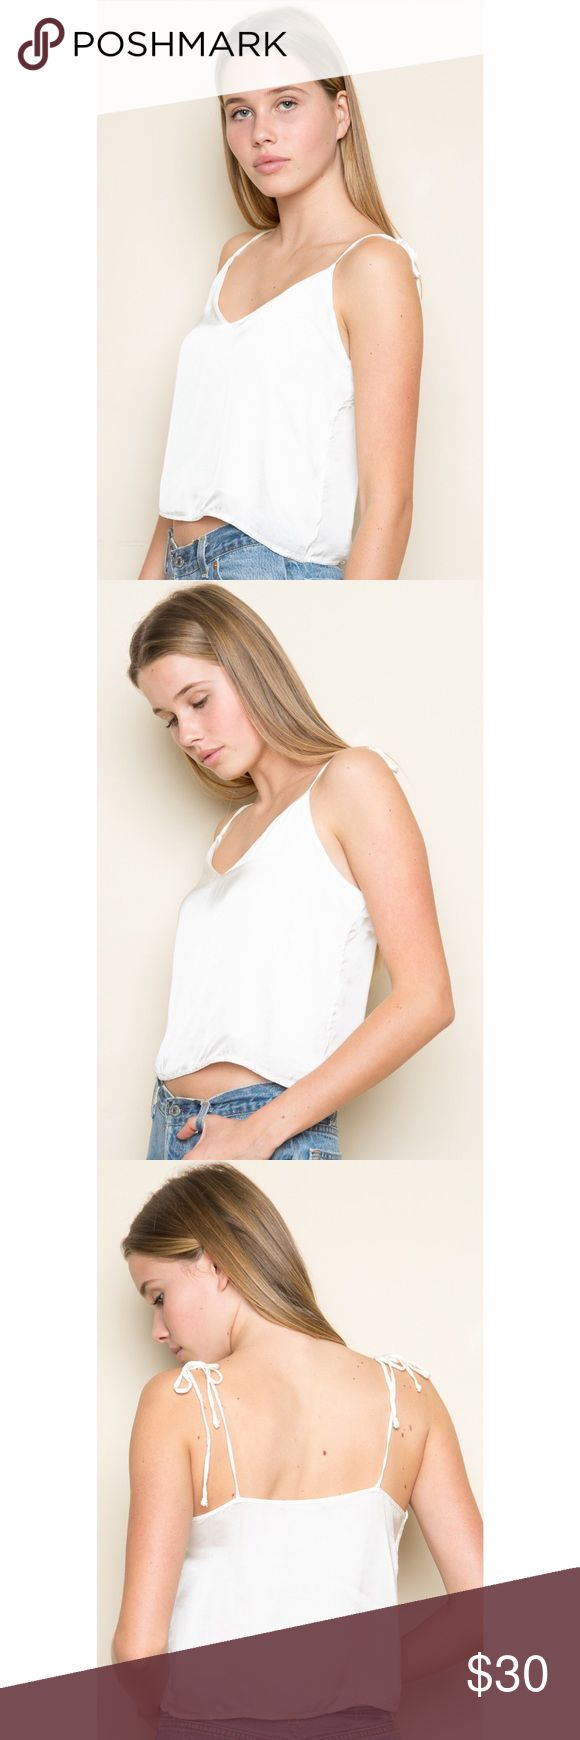 Brandy Melville Banks Top Silky white tank top with a v neck, partial lining and adjustable straps. Looks so cute with a t shirt under or worn by itself. Brand new with tags. One size but will best suit an extra small/small Brandy Melville Tops Tank Tops